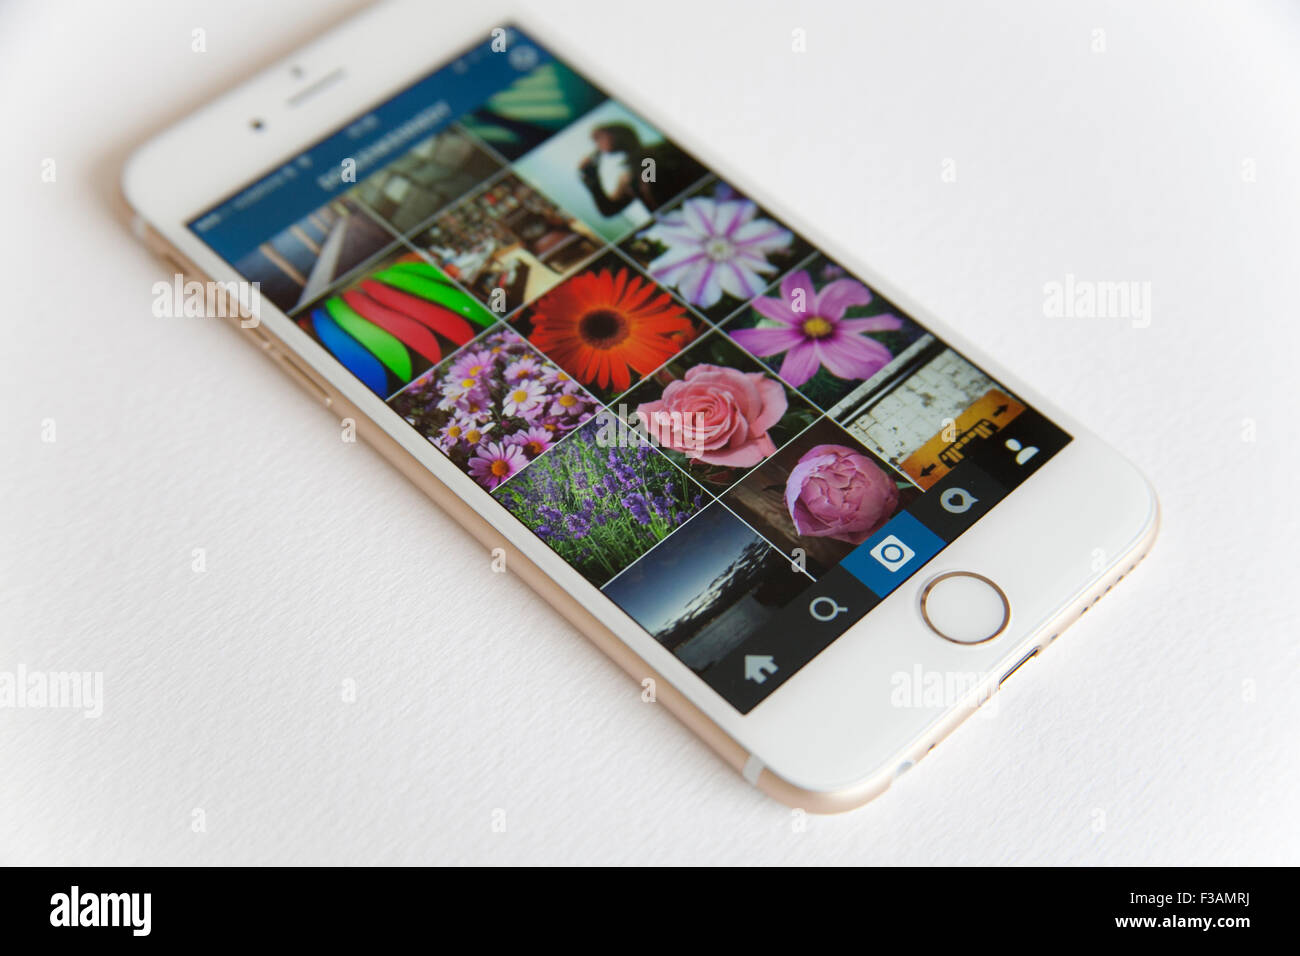 iphone 6 gold and white. gold and white apple iphone 6 with an instagram photo feed against a background iphone